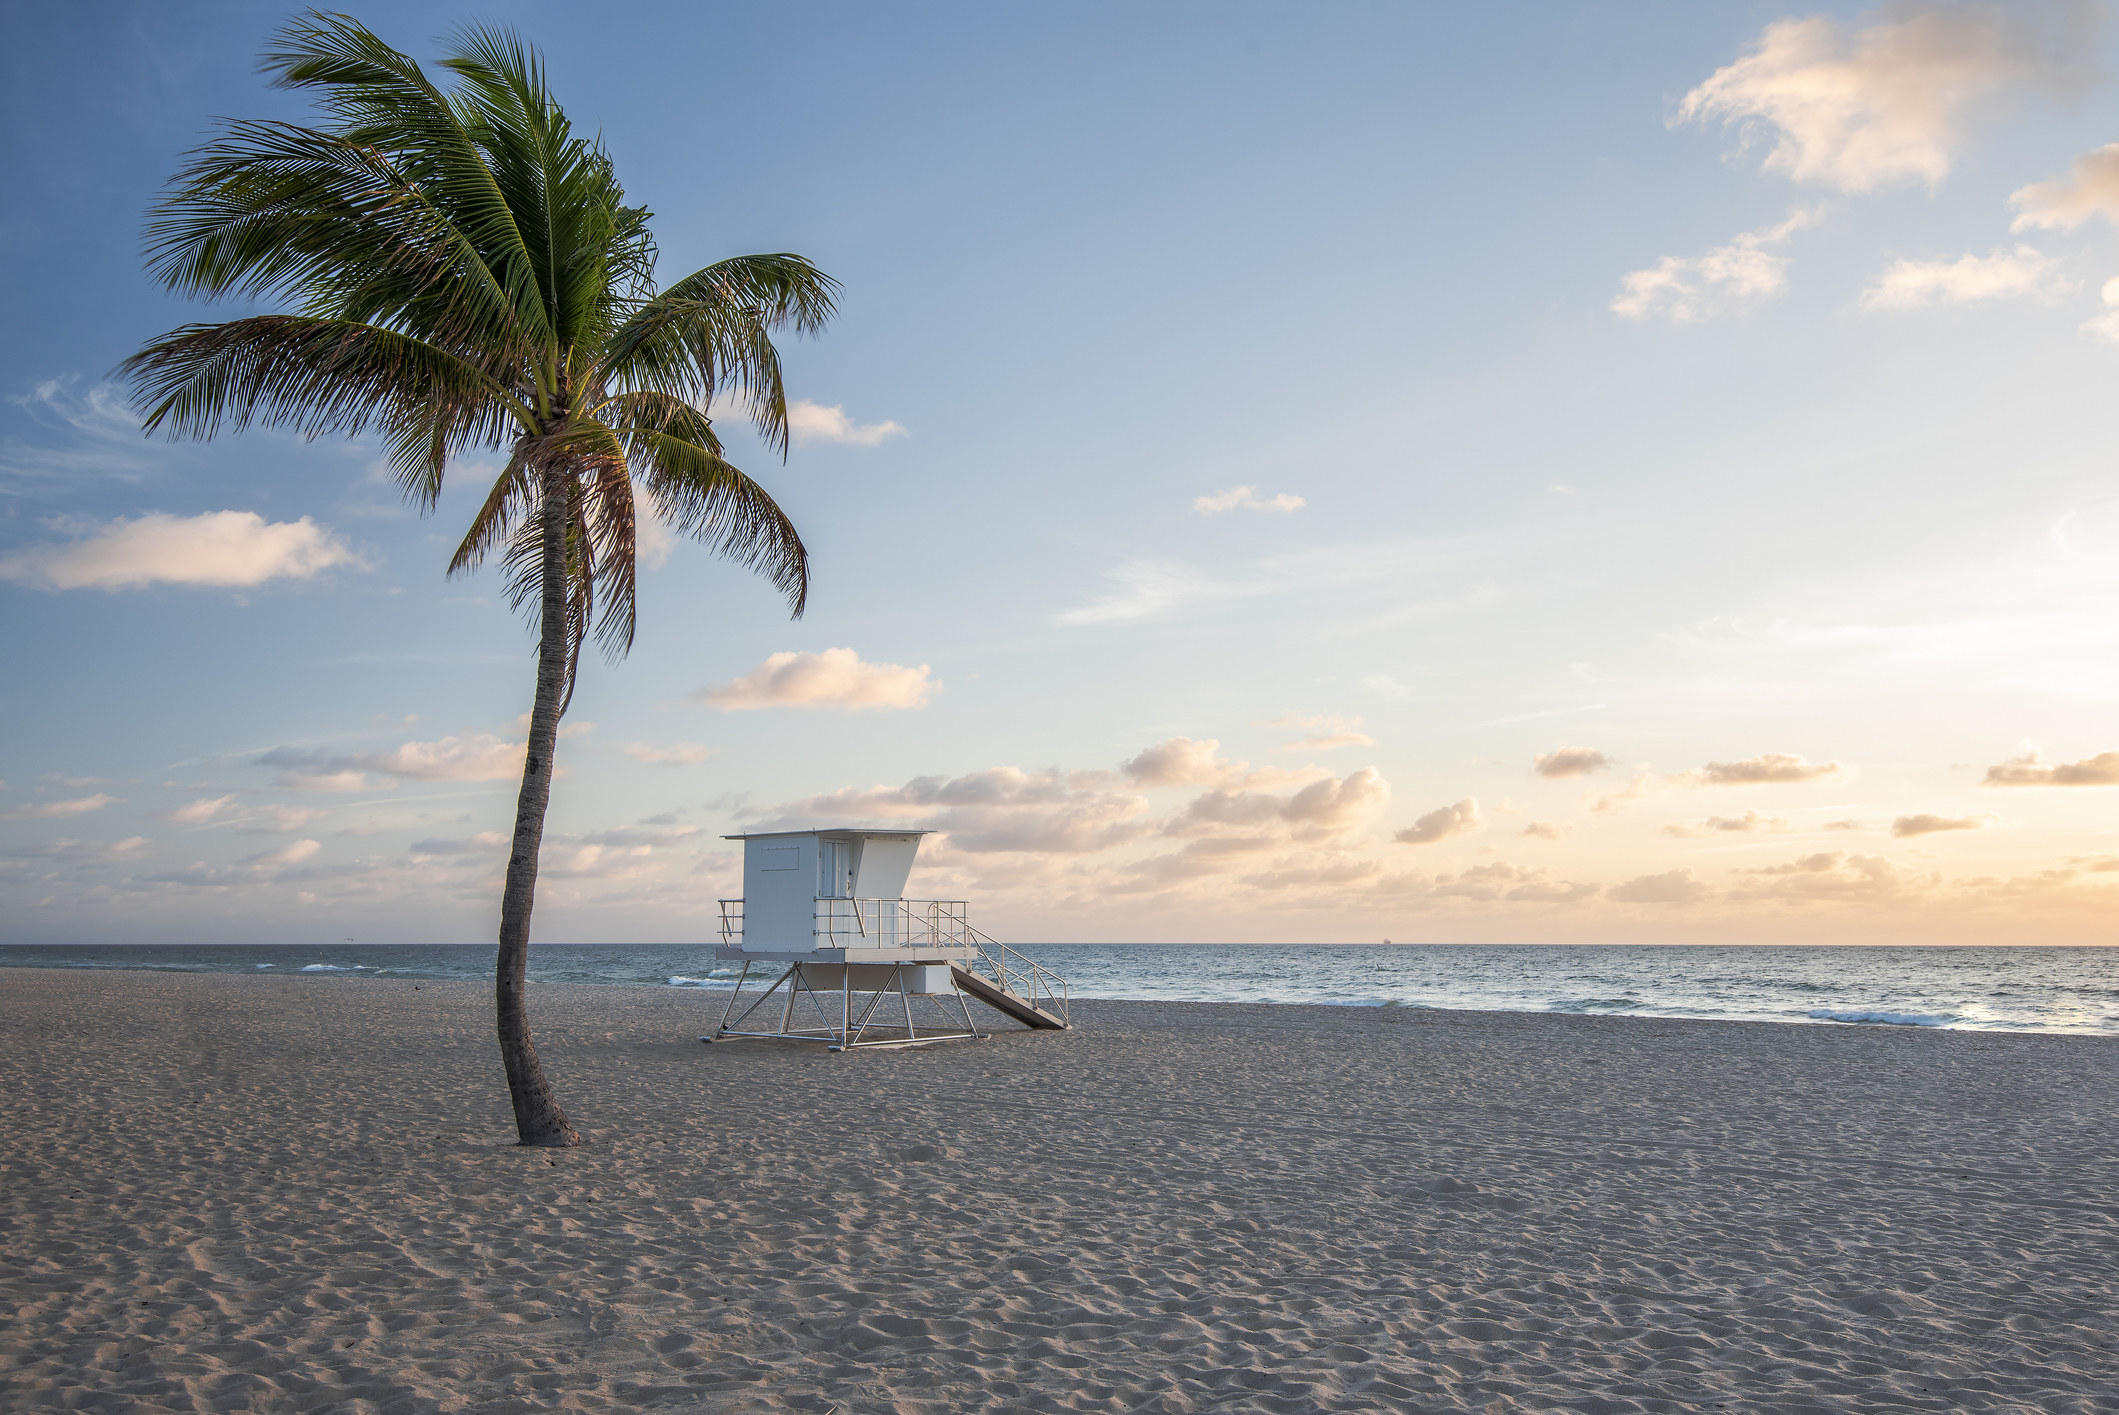 An empty beach in Ft. Lauderdale with a lone lifeguard station and palm tree